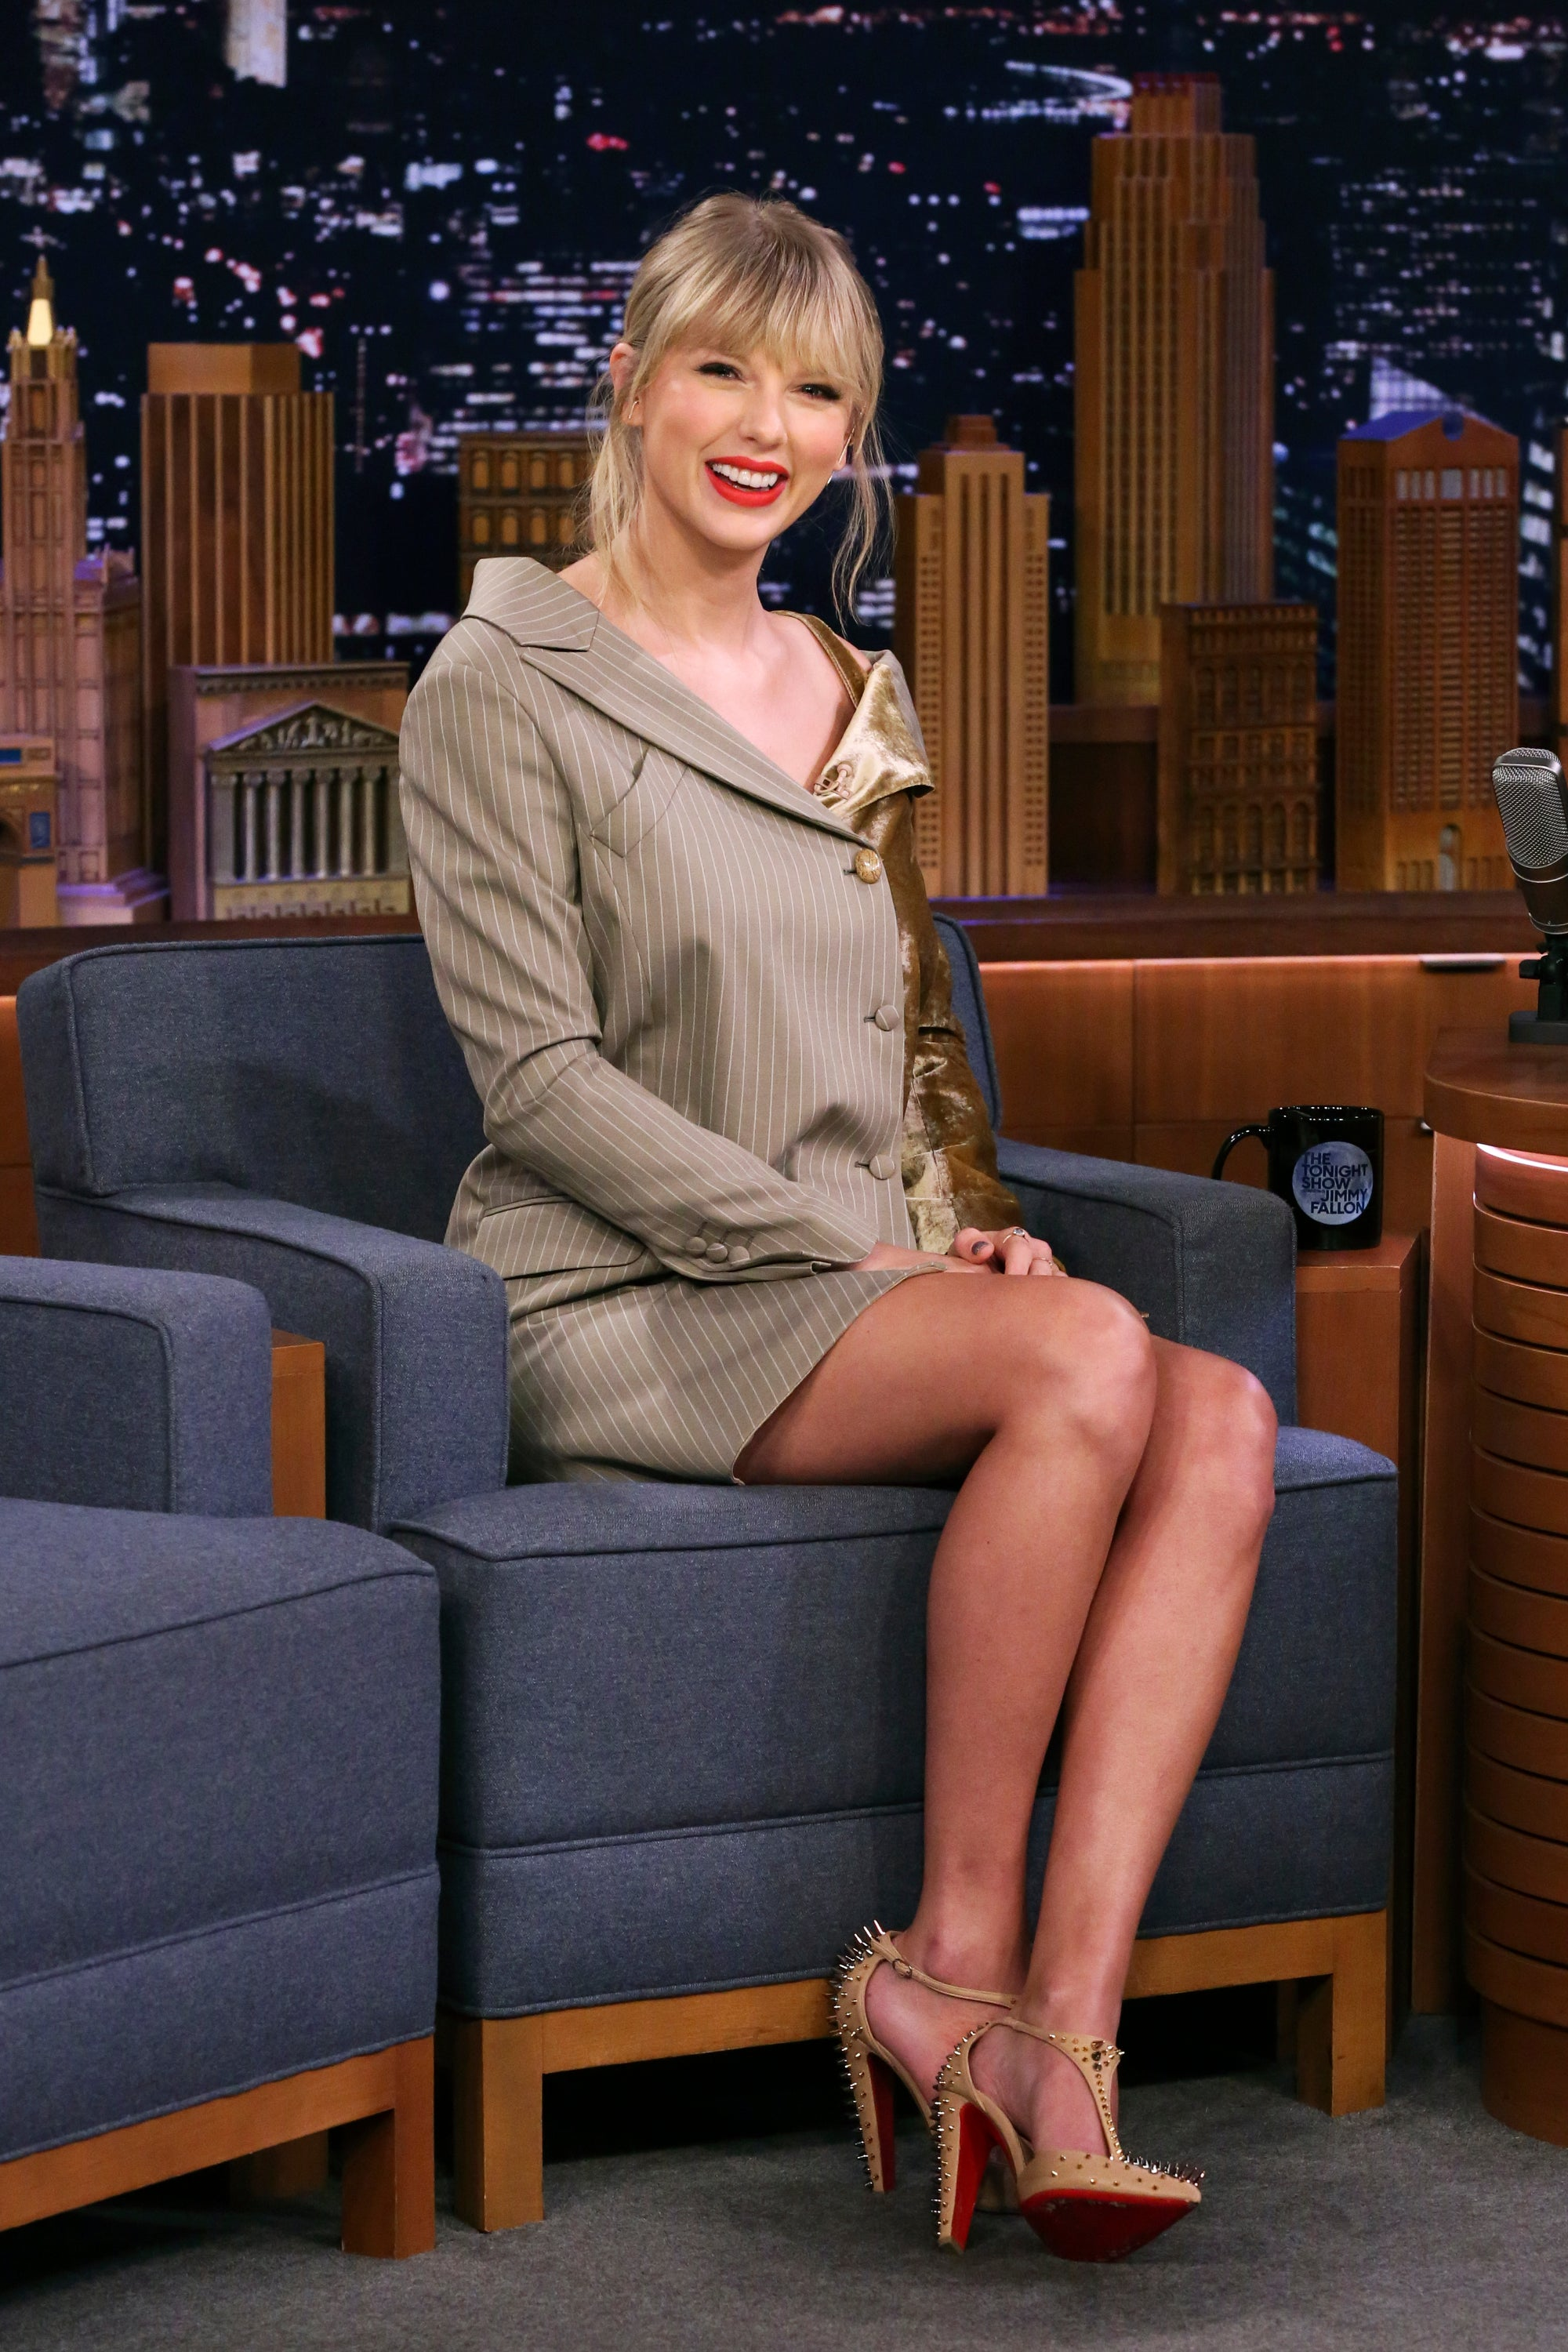 Taylor Swift Cries Over A Banana In Hilarious Post-Surgery Footage